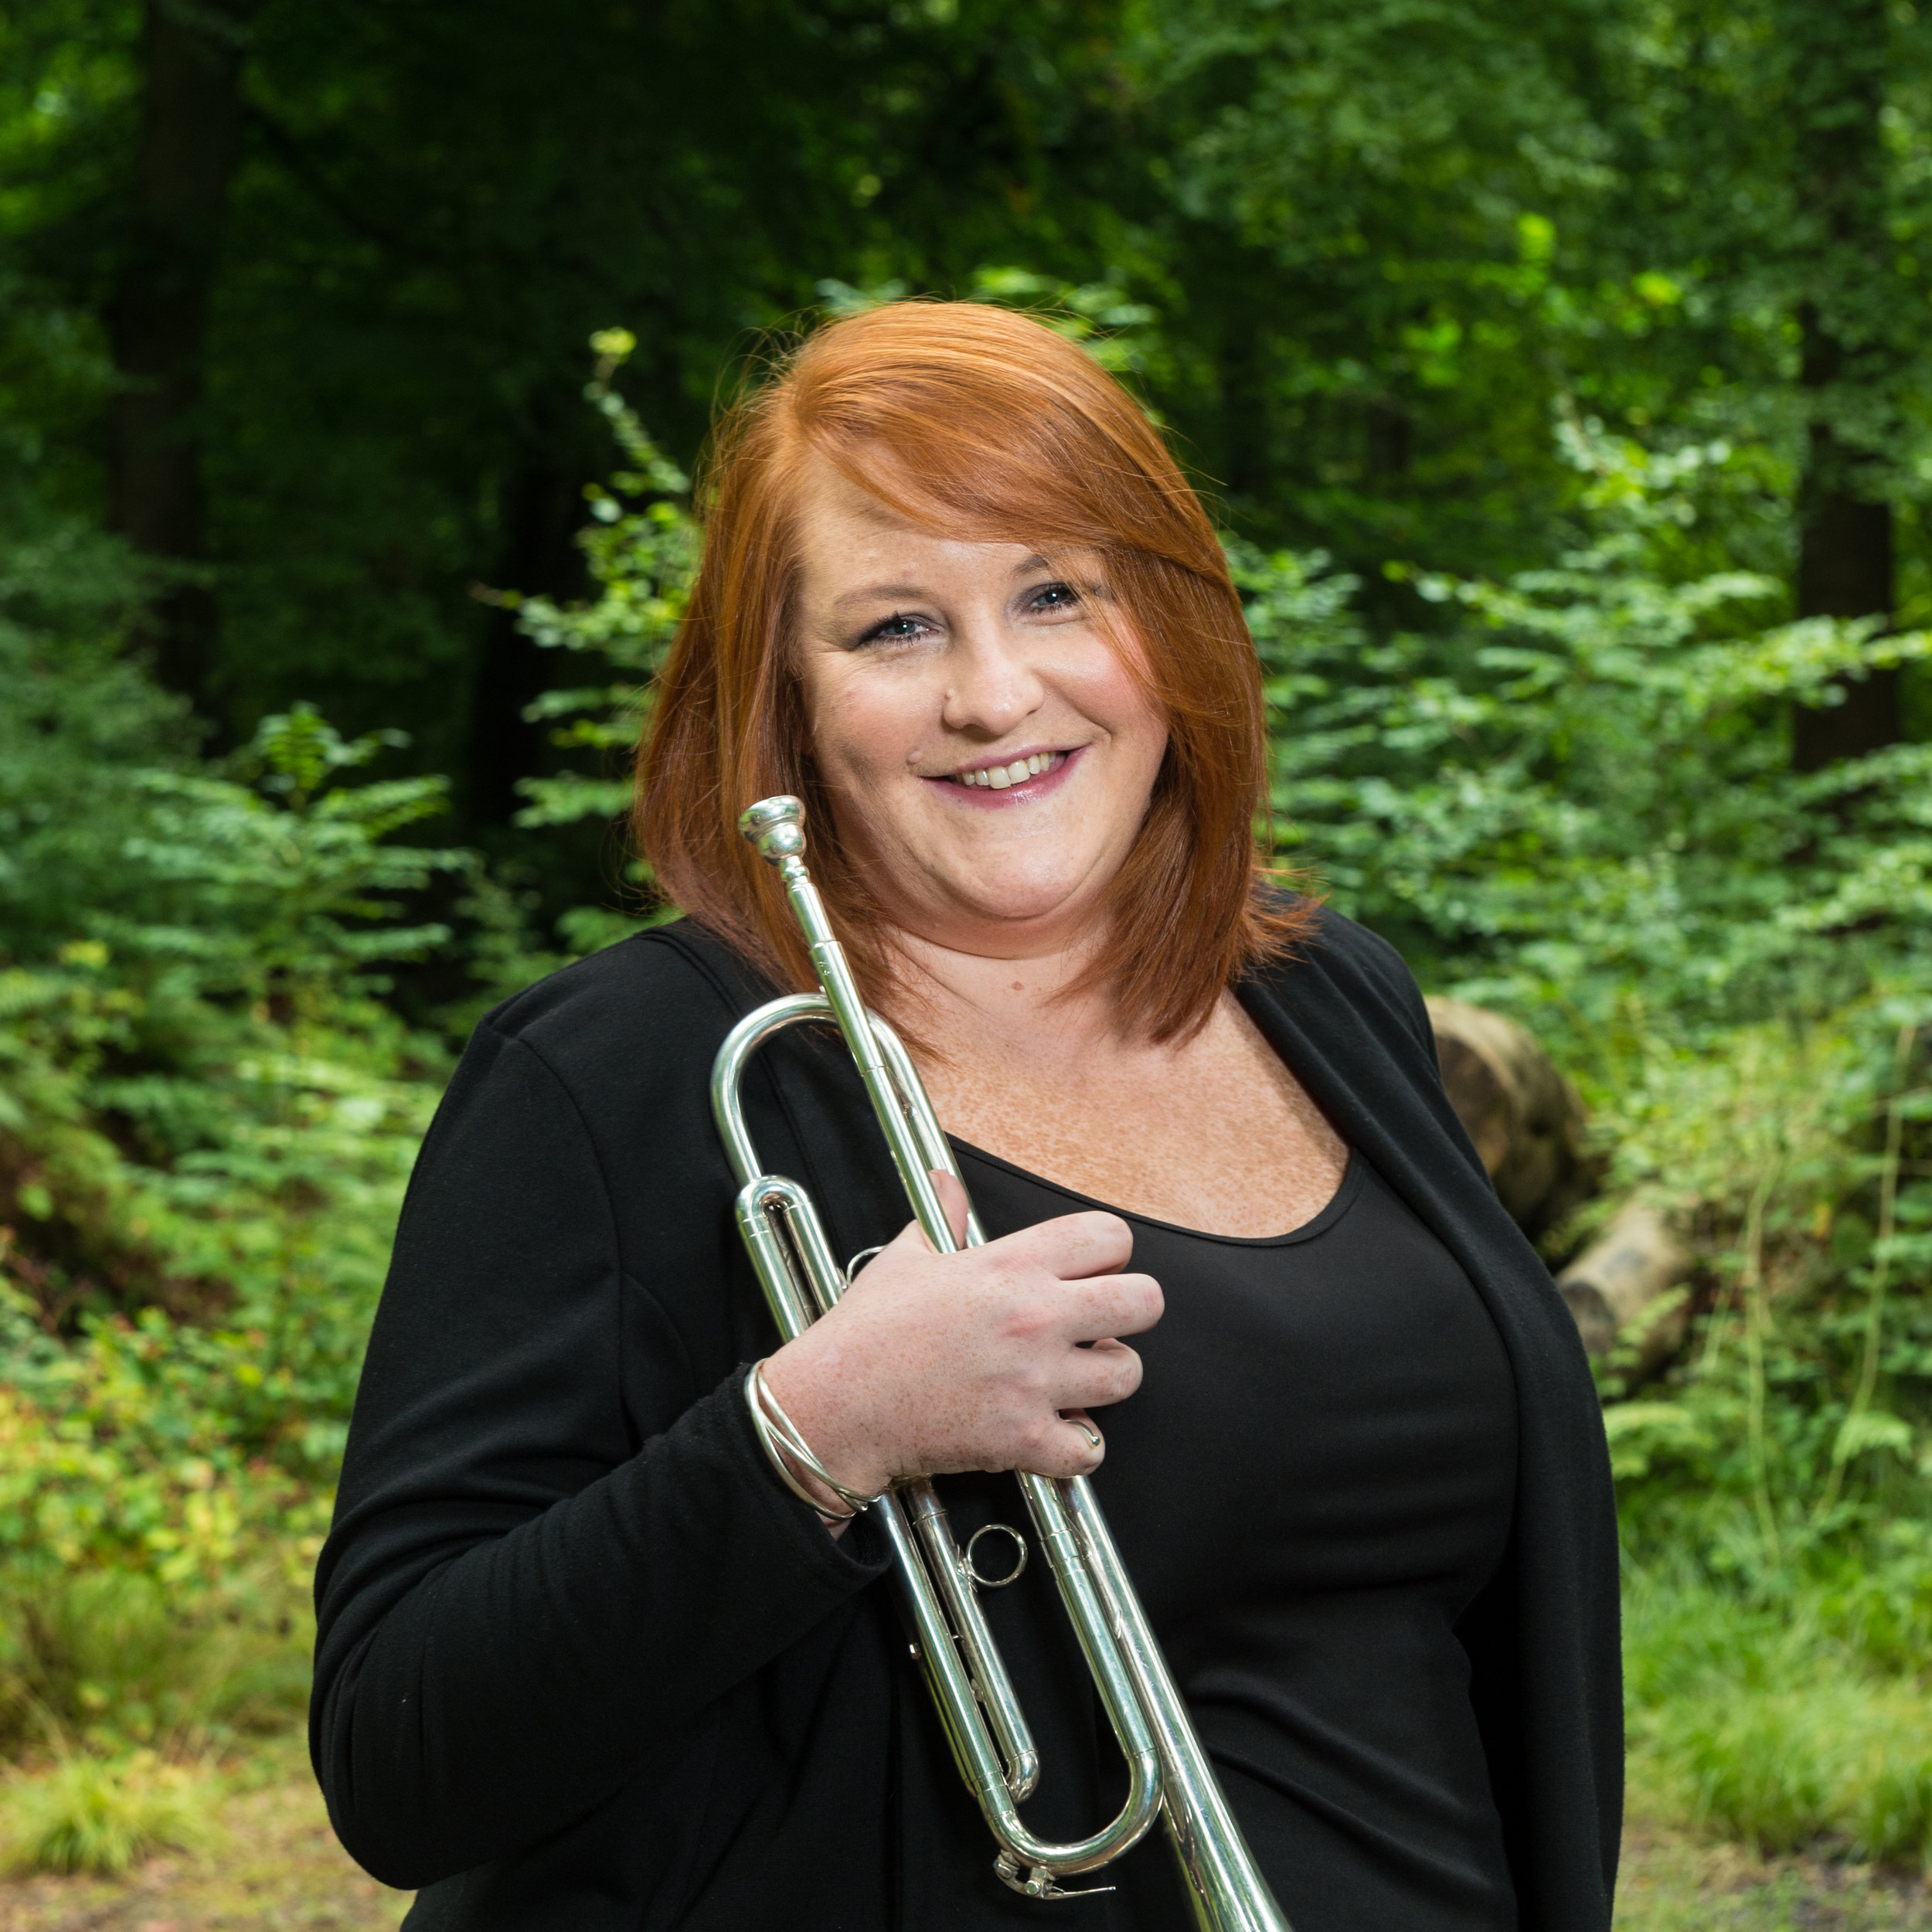 Pamela Stainer - Pamela studied at the Guildhall School of Music and Drama in London and was a founding member of Brass Spectrum Brass Quintet.She has performed with the RTÉ National Symphony Orchestra, the RTÉ Concert Orchestra, and the Ulster Orchestra.As a soloist she has performed in the Ulster Hall, Belfast, and across Europe.She works as a trumpet teacher and music arranger, and contributes important education work as a member of Brass Spectrum and Artemis Brass.